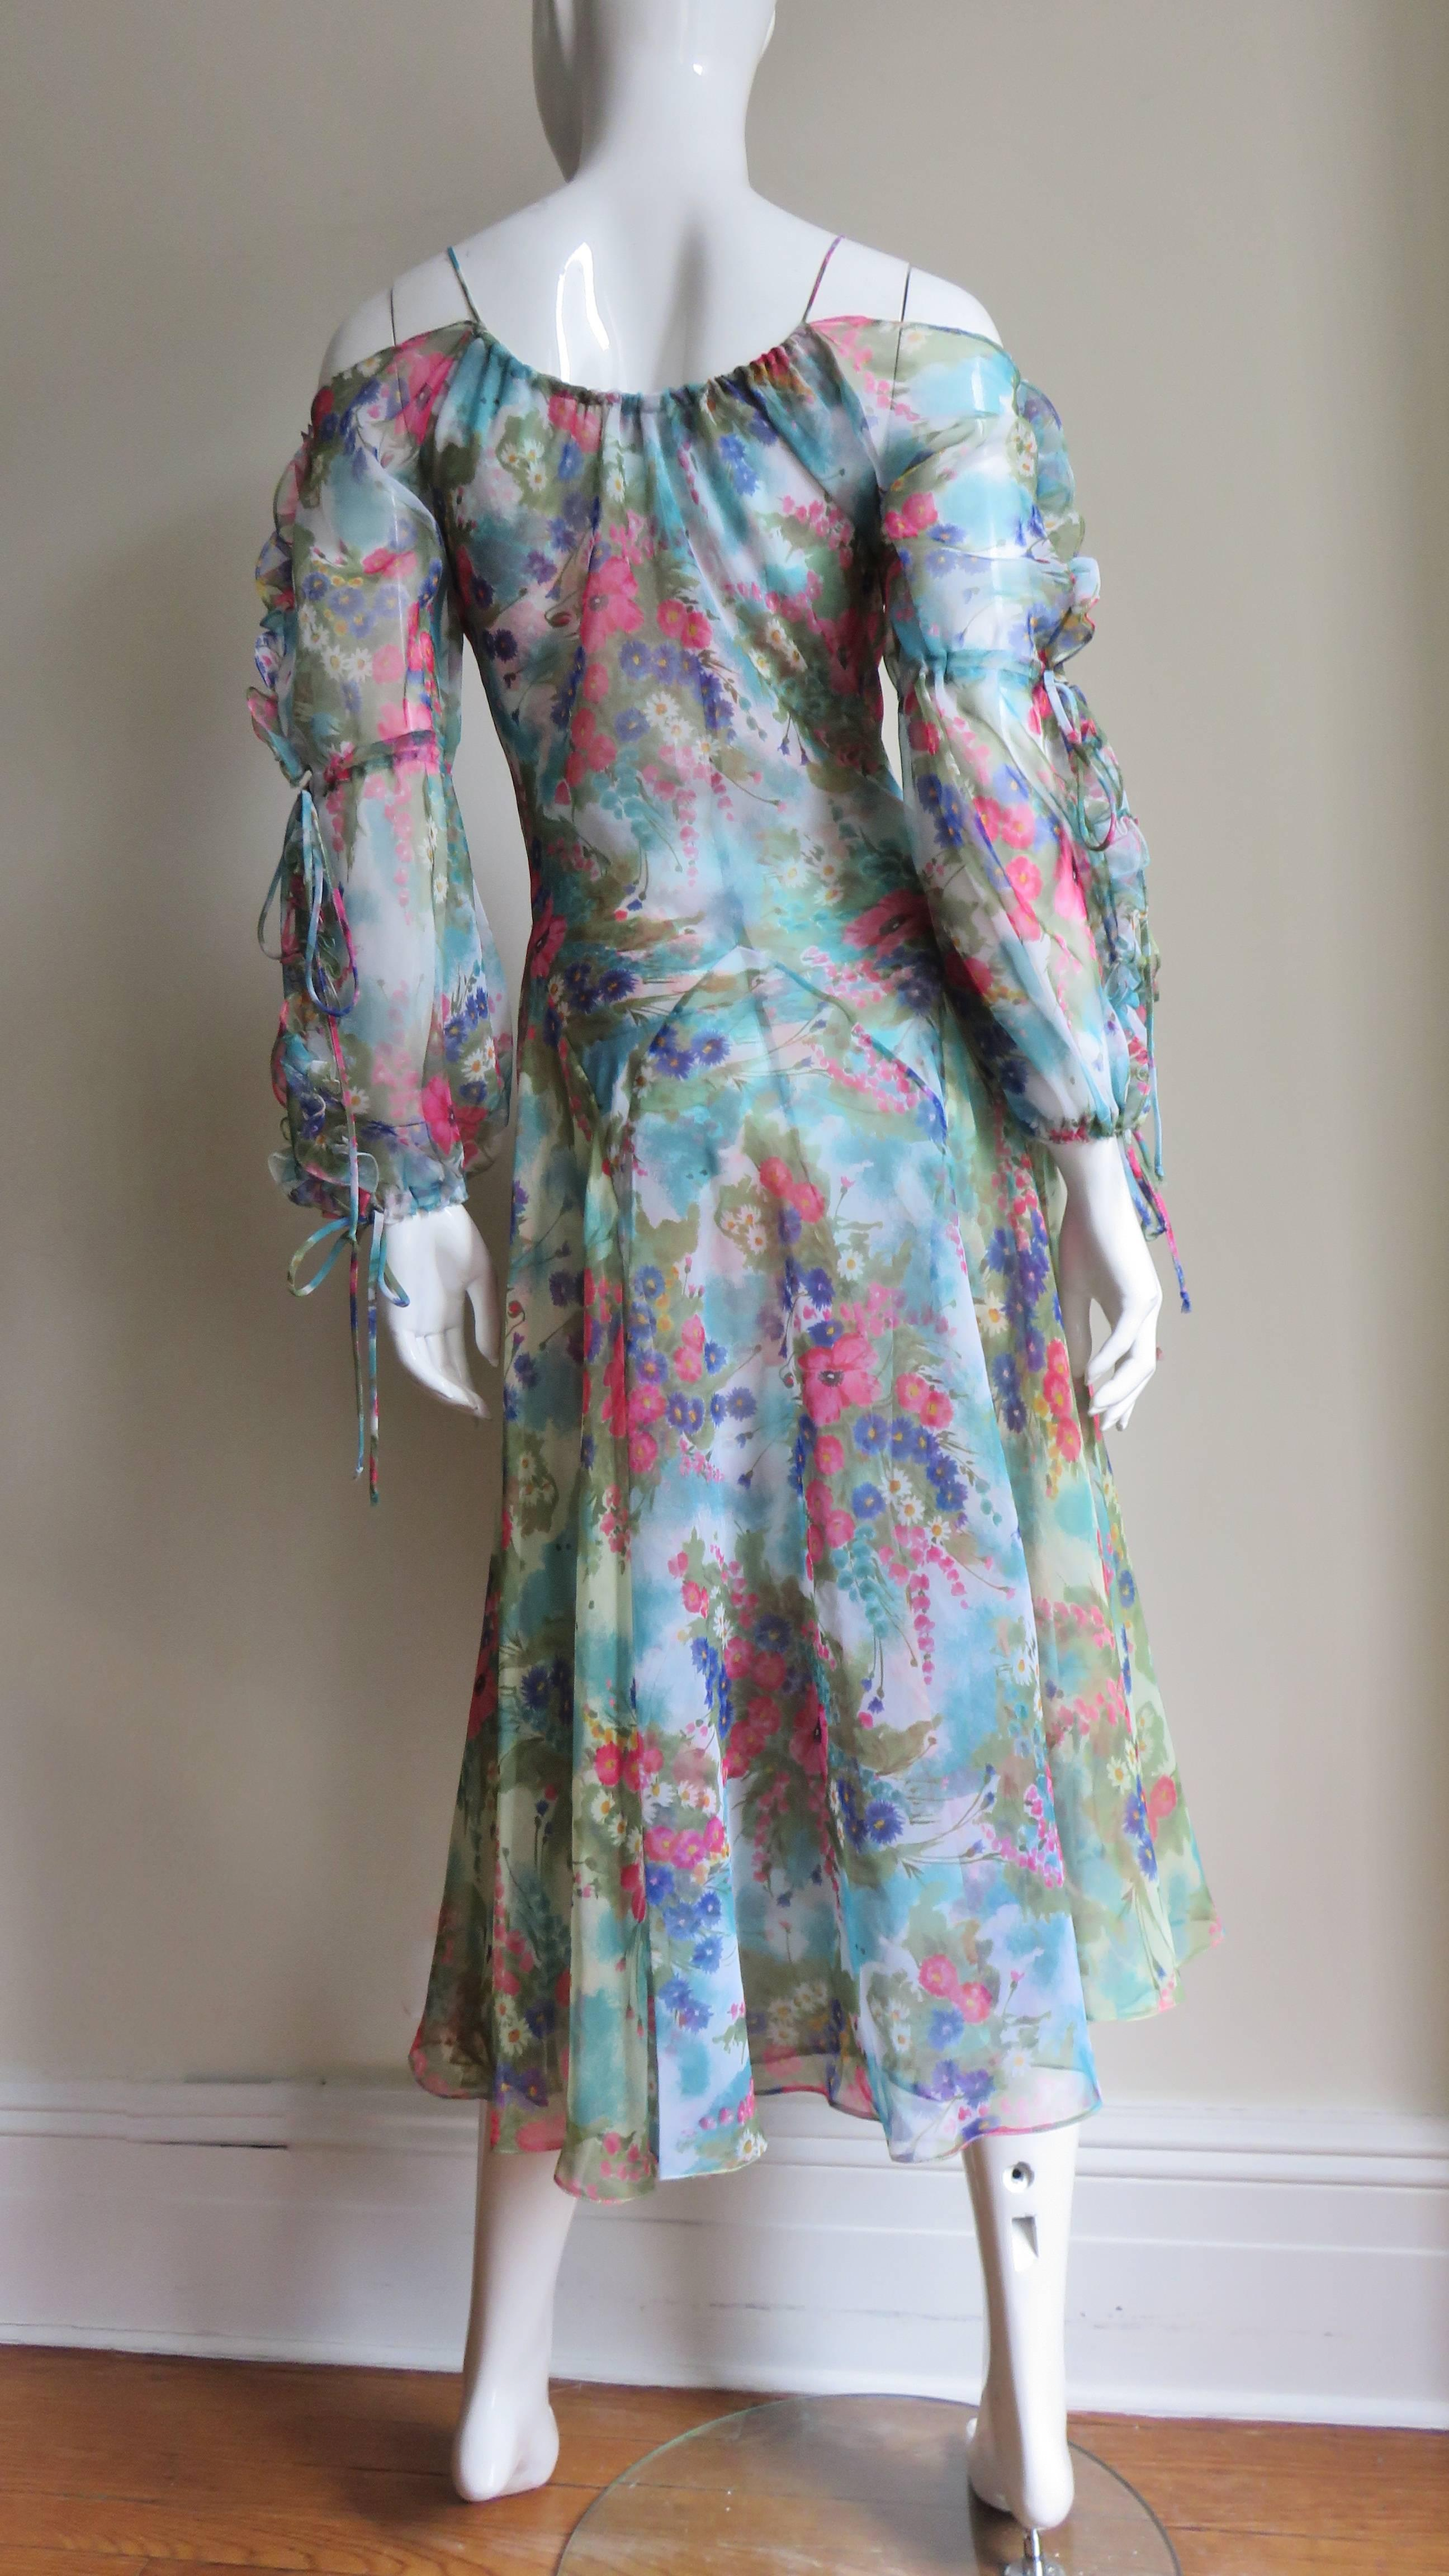 598be60cef 1970s Giorgio Sant'Angelo Dress with Cutout Sleeves For Sale at 1stdibs